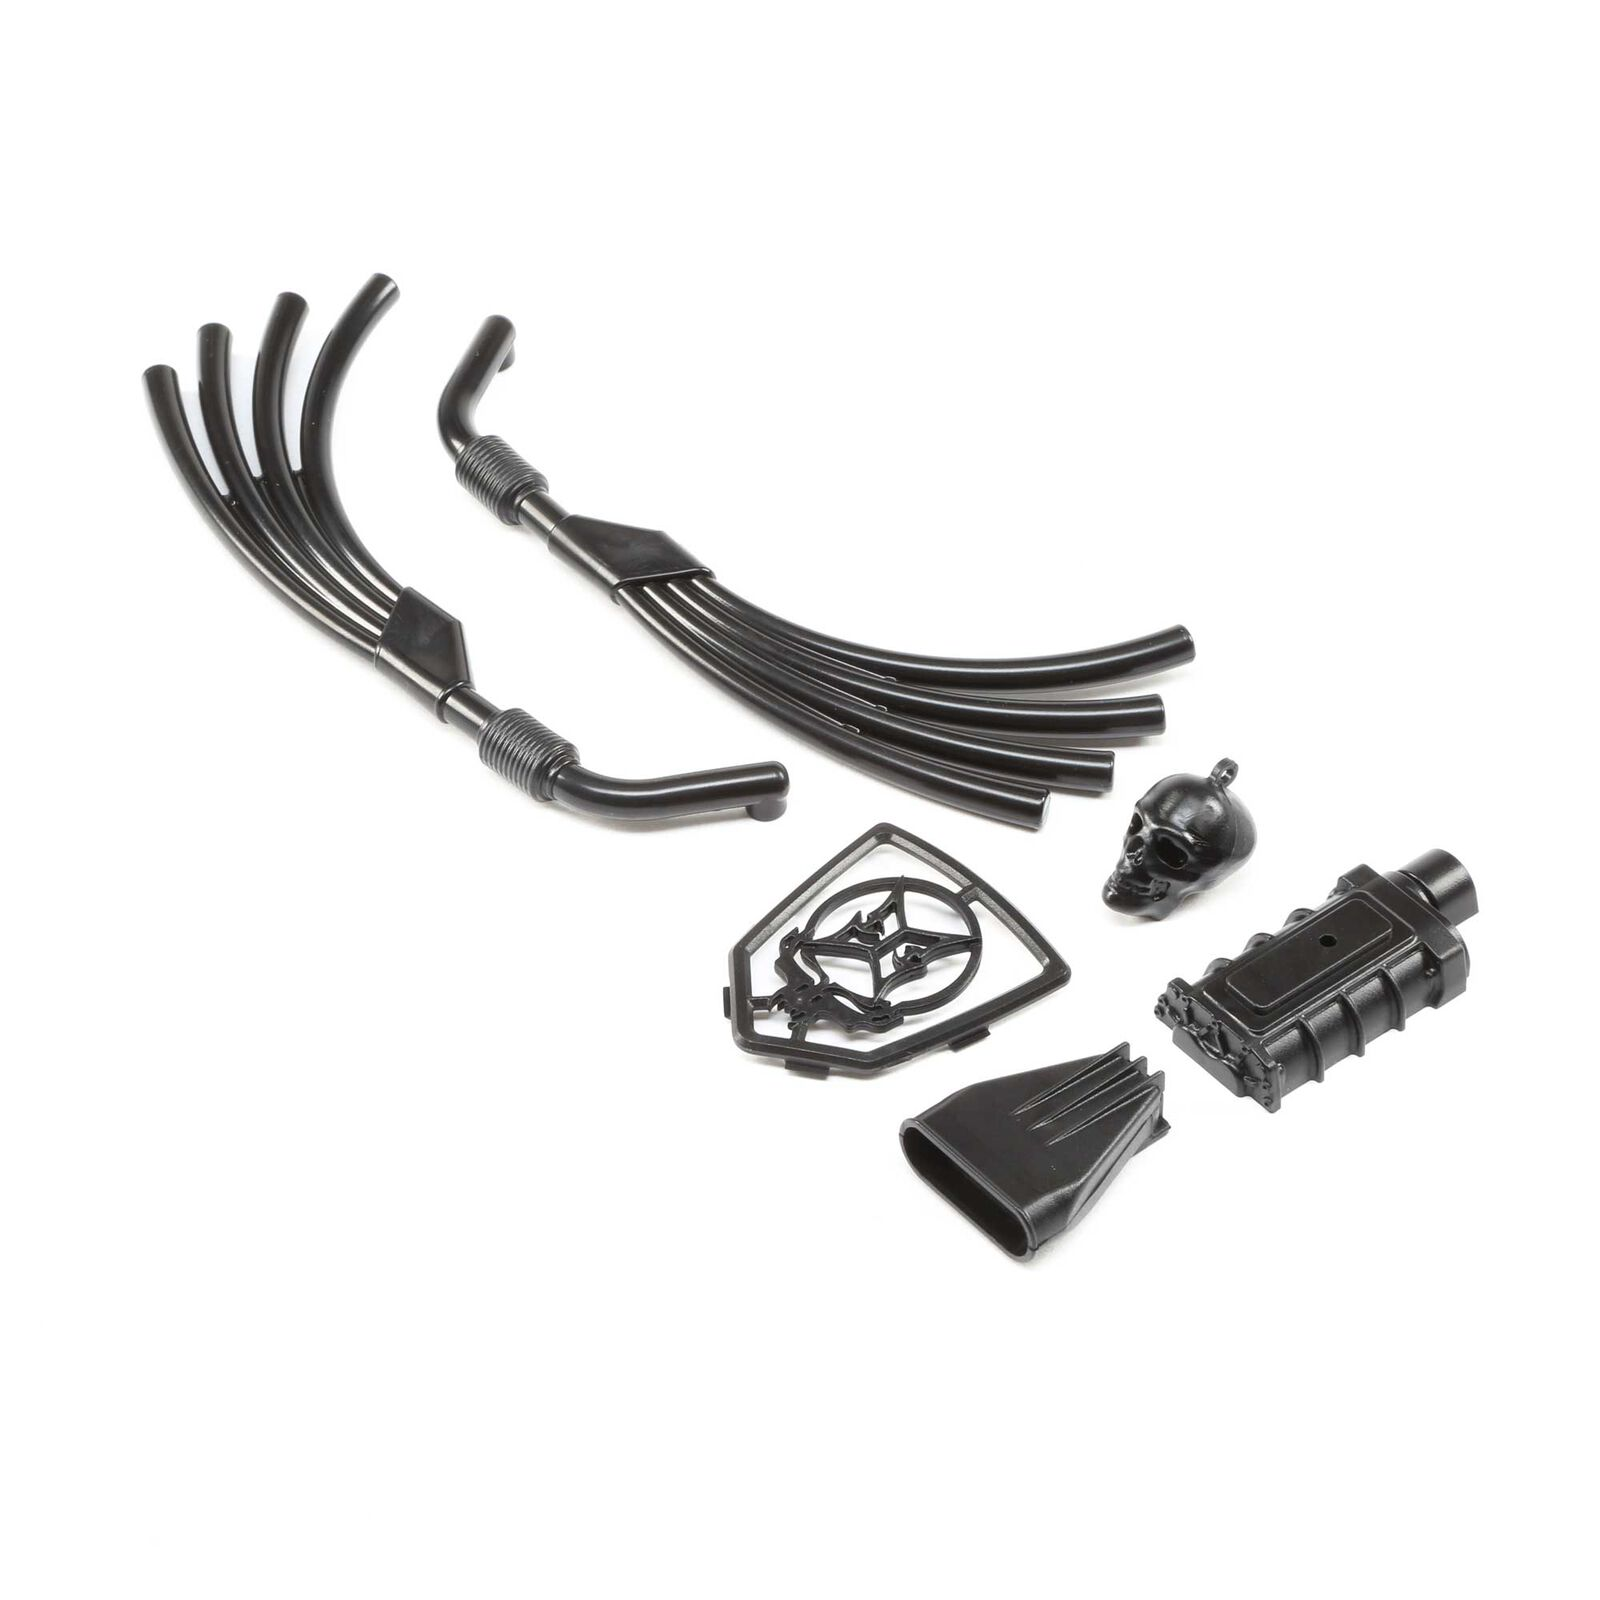 Motor, Exhaust and Grill Parts, Black: Doomsday